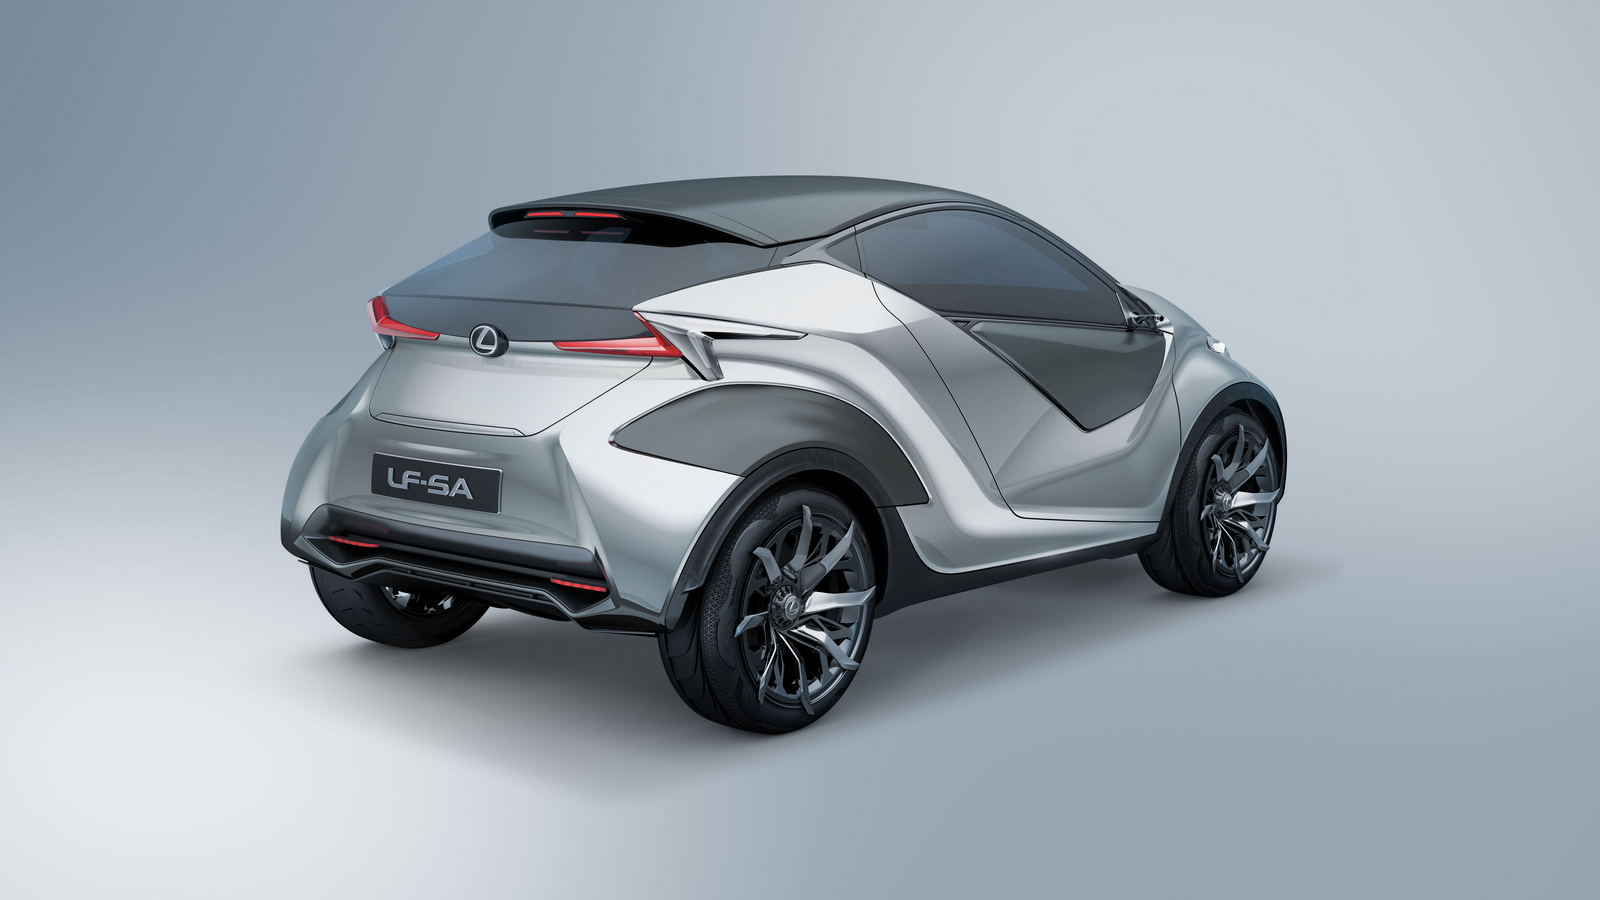 2017 Lexus LF A Concept photo - 2